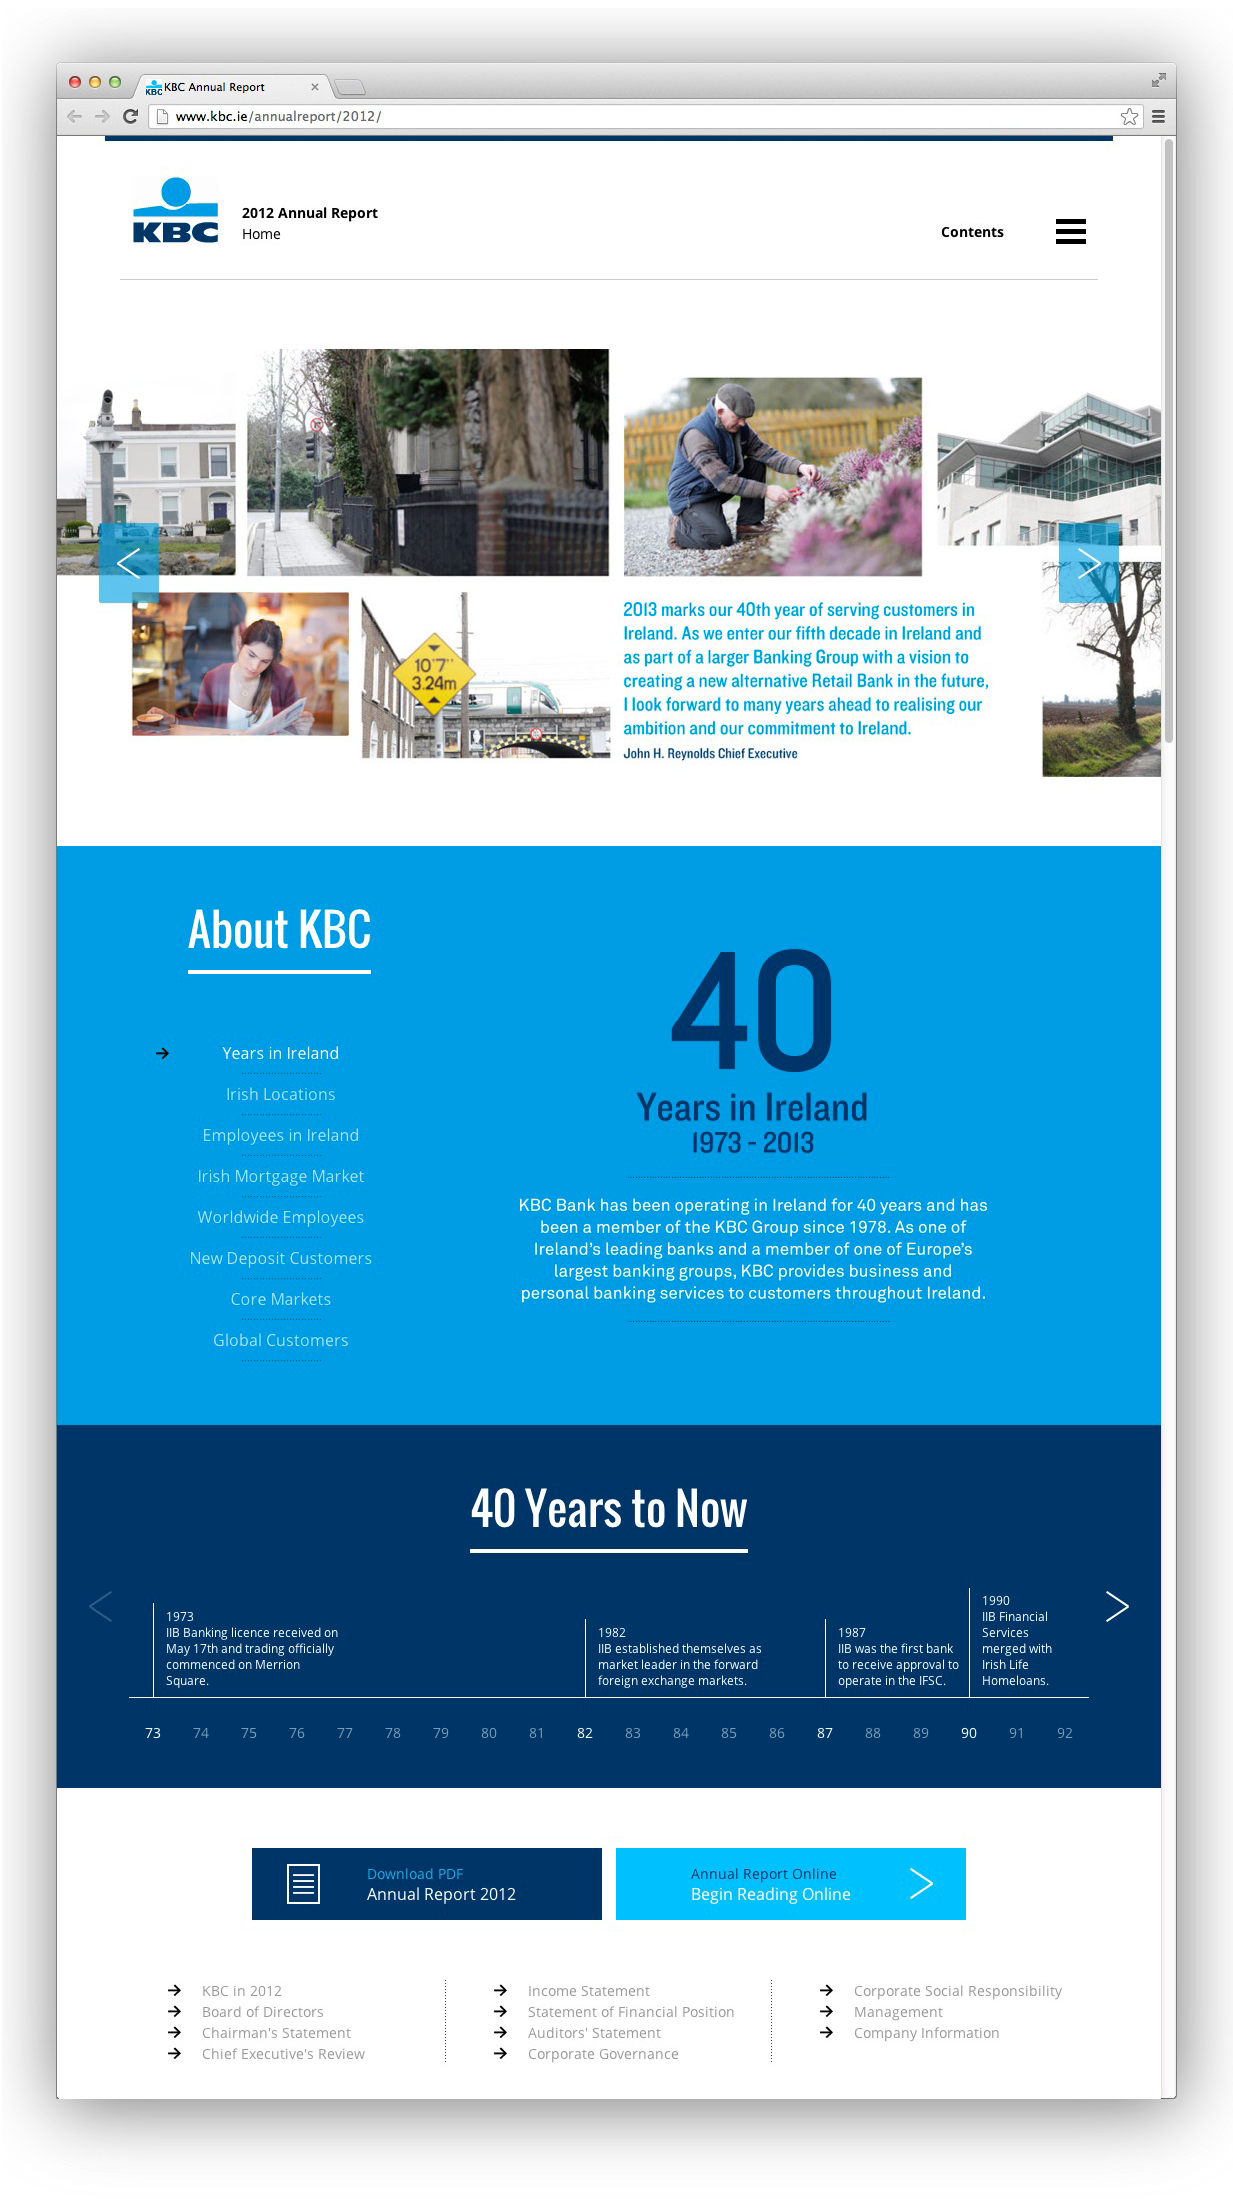 Cover image: KBC Annual Report website